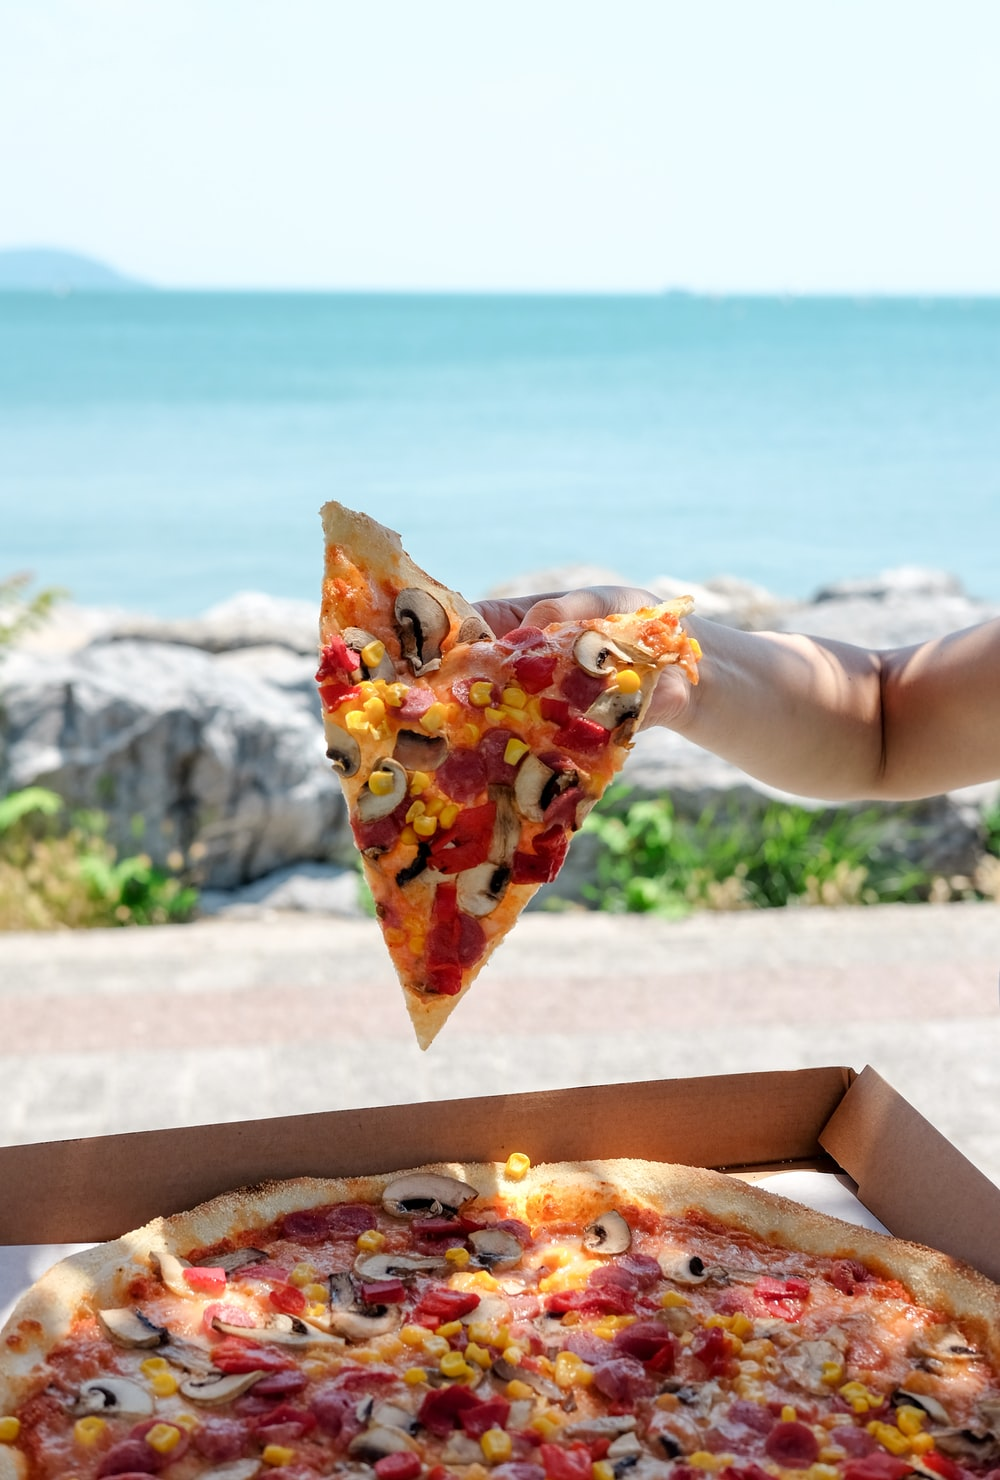 person holding slice of pizza